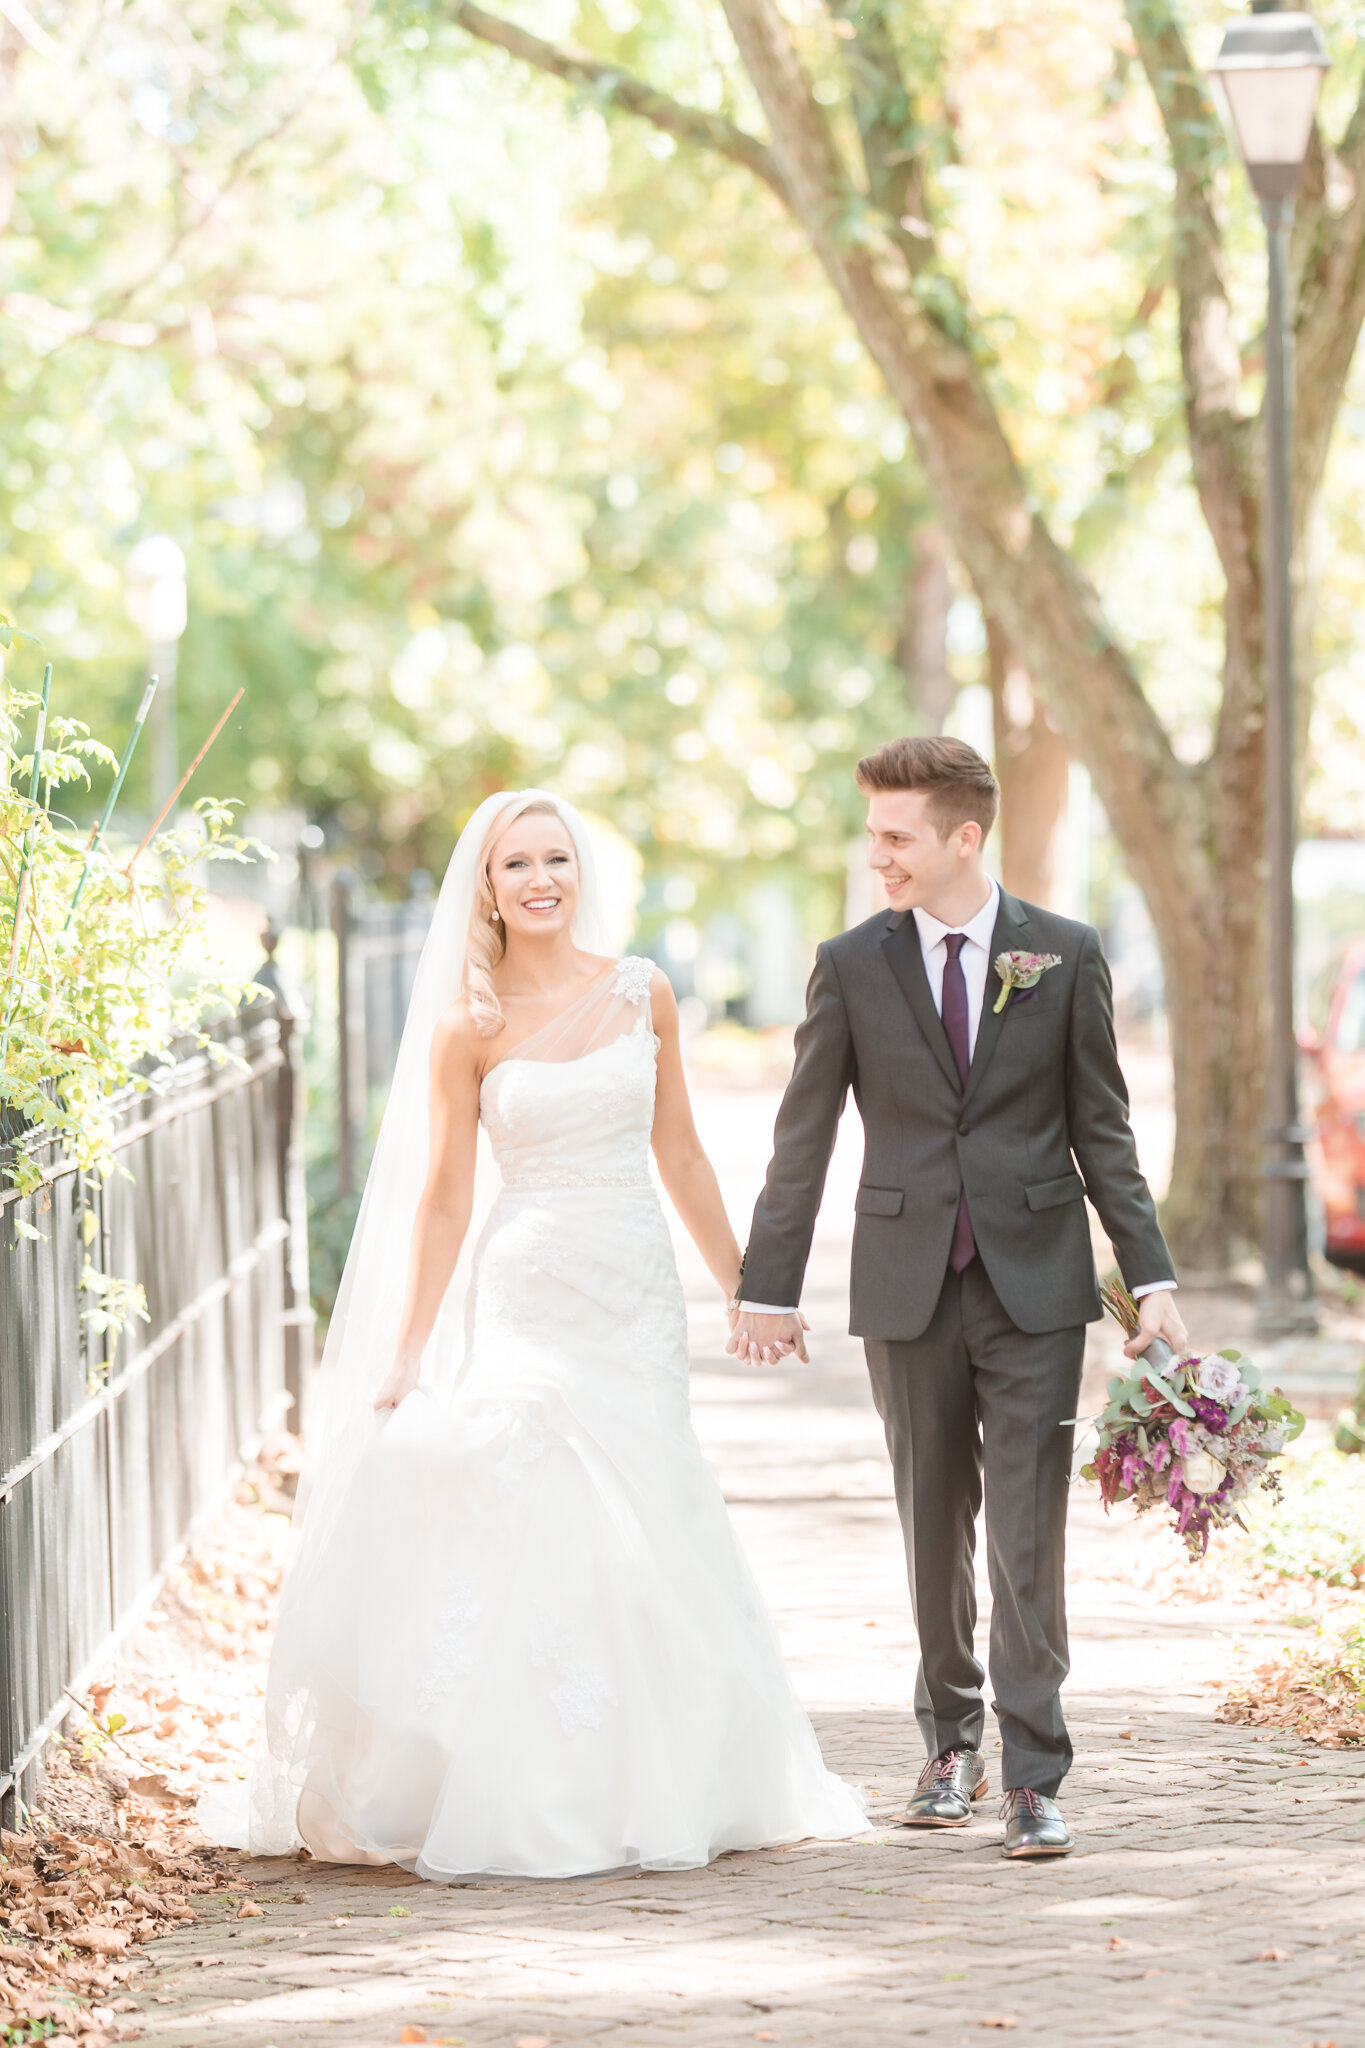 Downtown Indianapolis Wedding at Cyrus Place6414.jpg